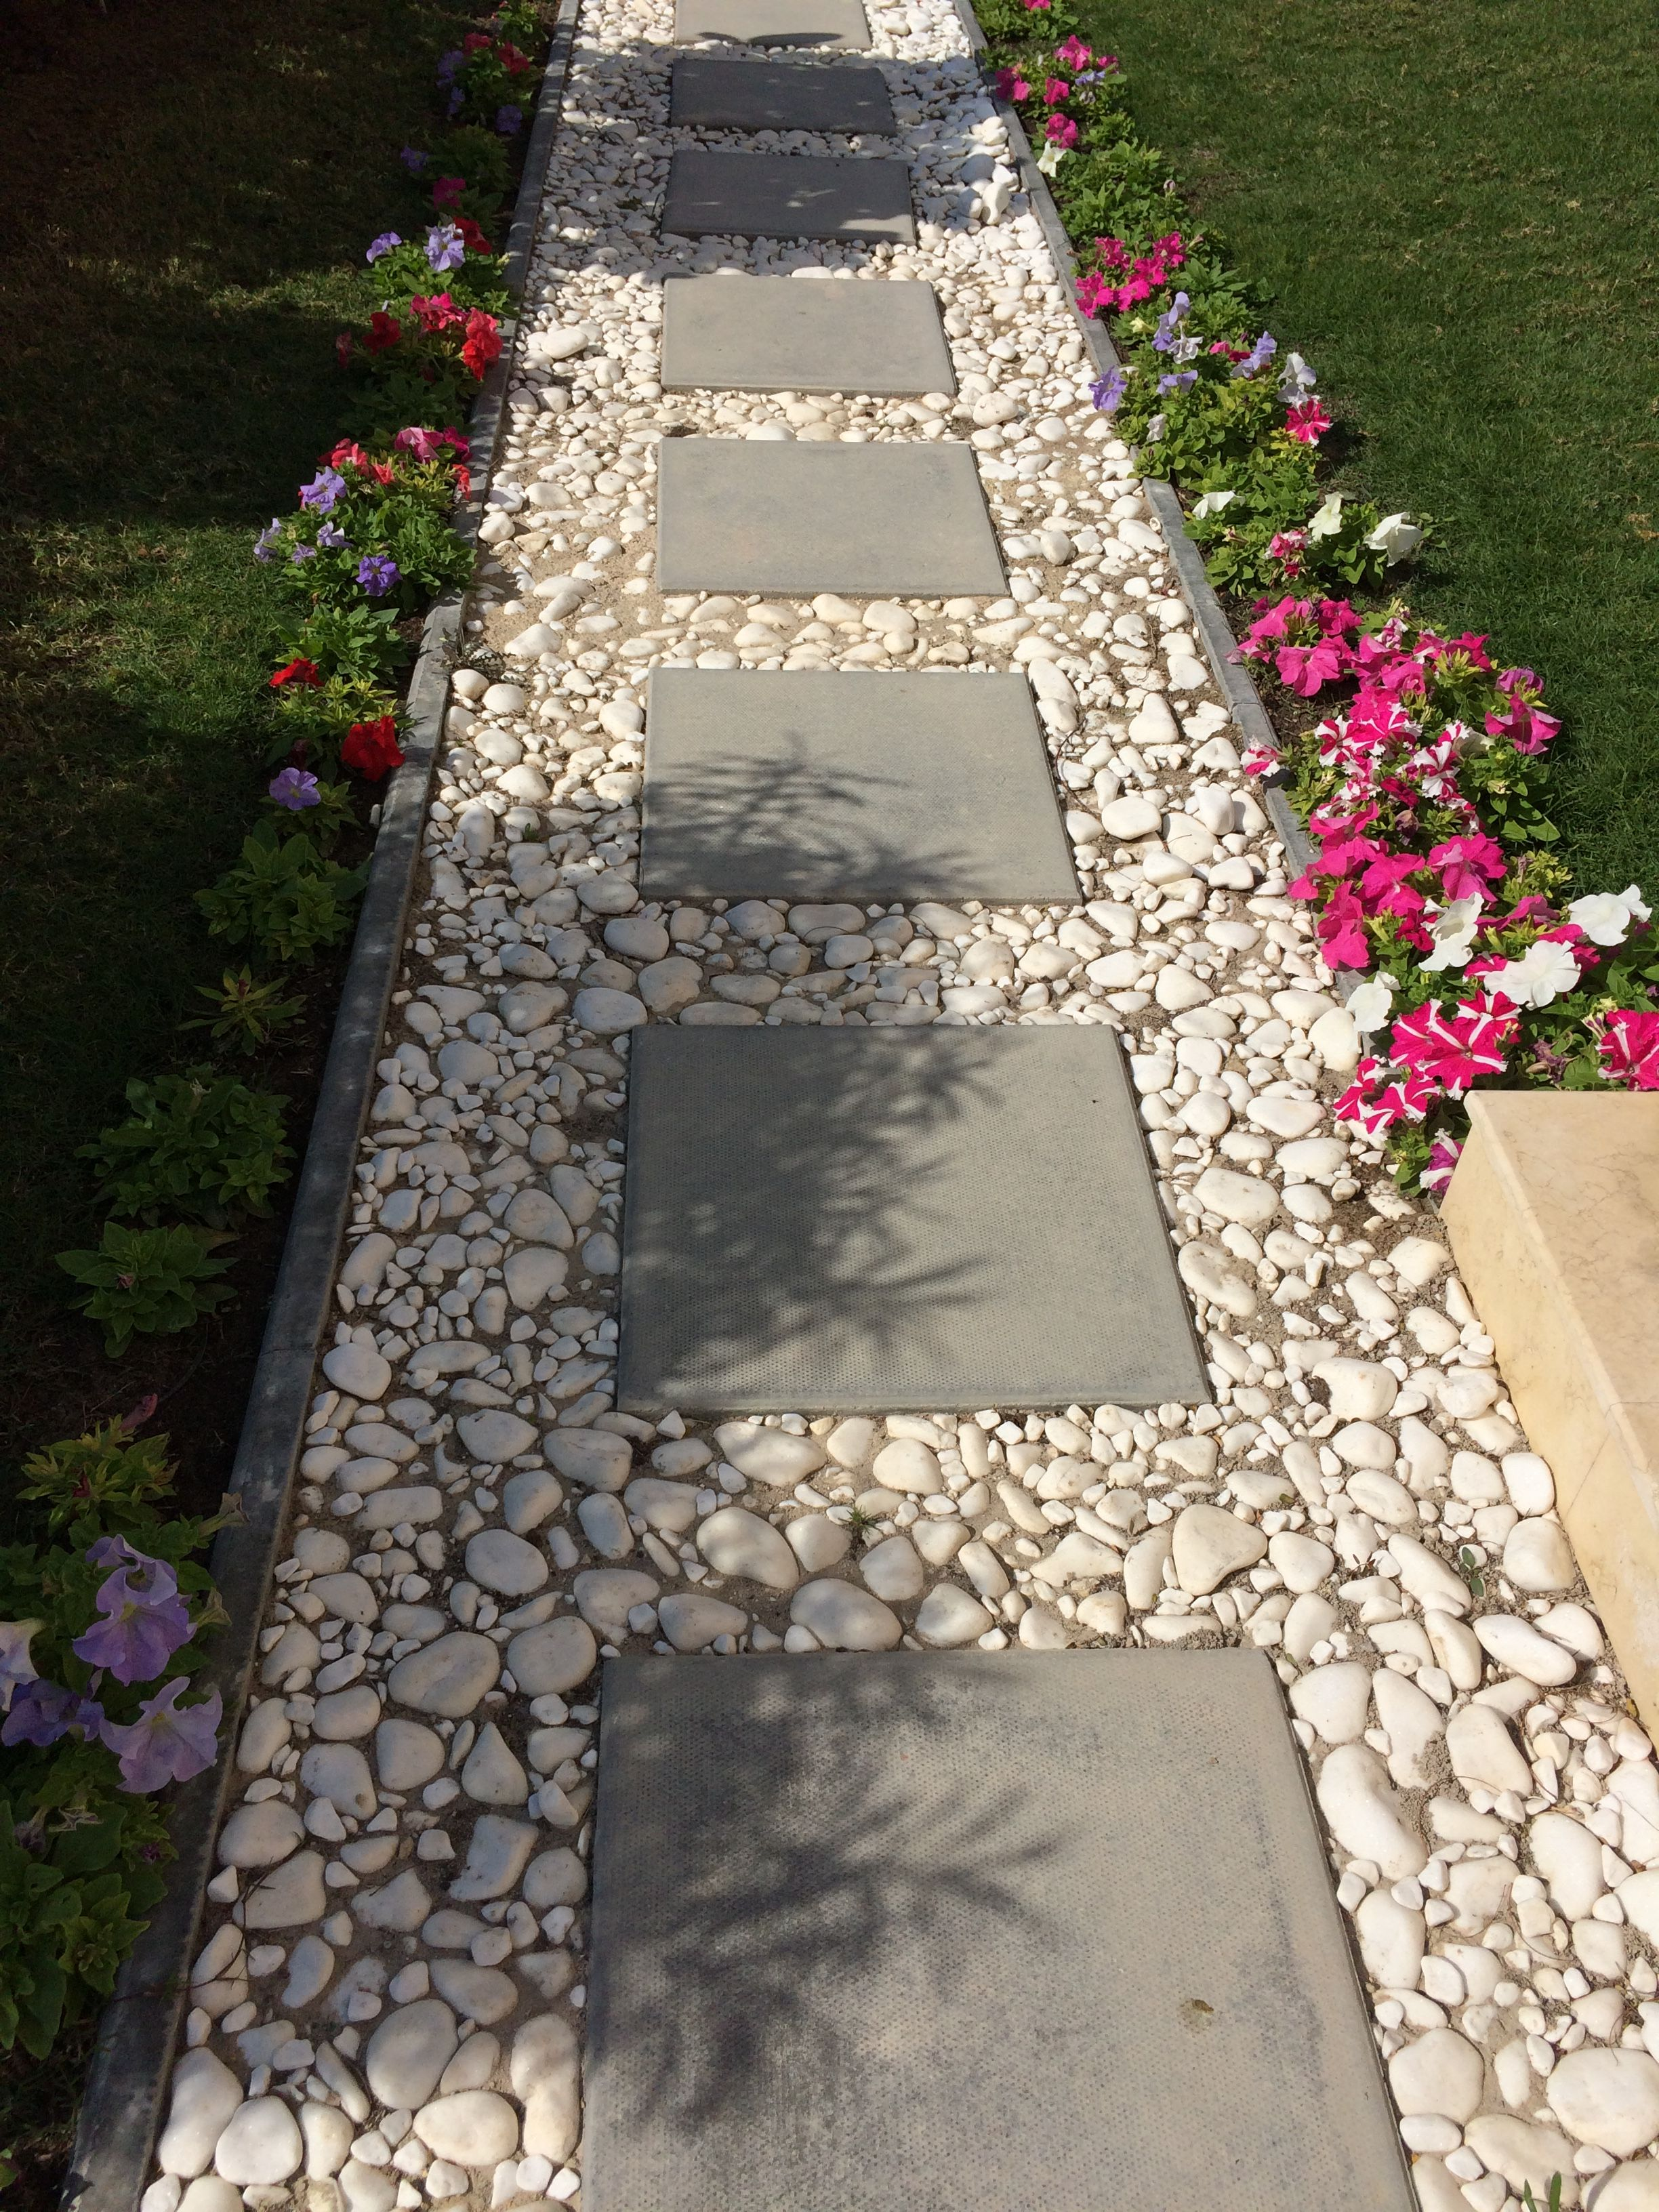 Cement Block Tiles Bordered By White Pebbles For A Simple Pathway Patio Garden Pinterest